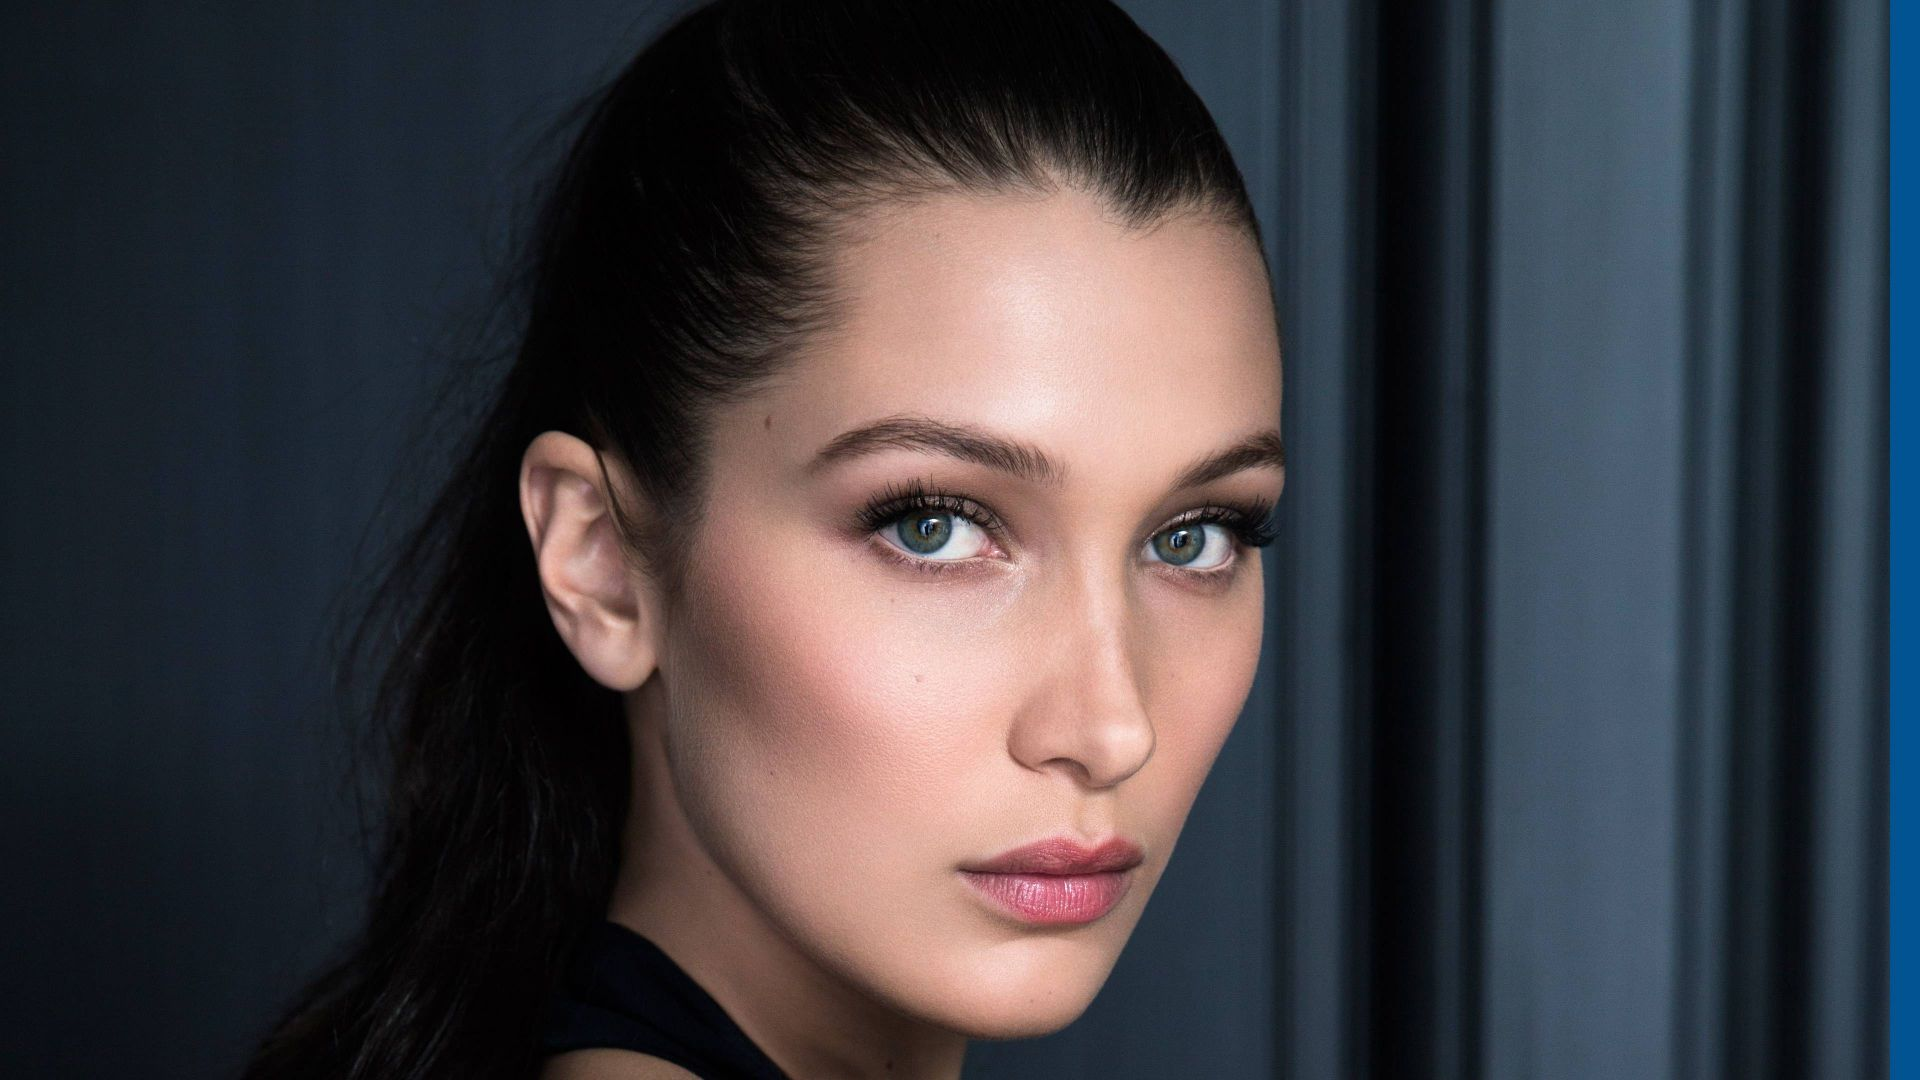 Белла Хадид, лицо, модель, Bella Hadid, face, Most popular celebs, actress, model (horizontal)